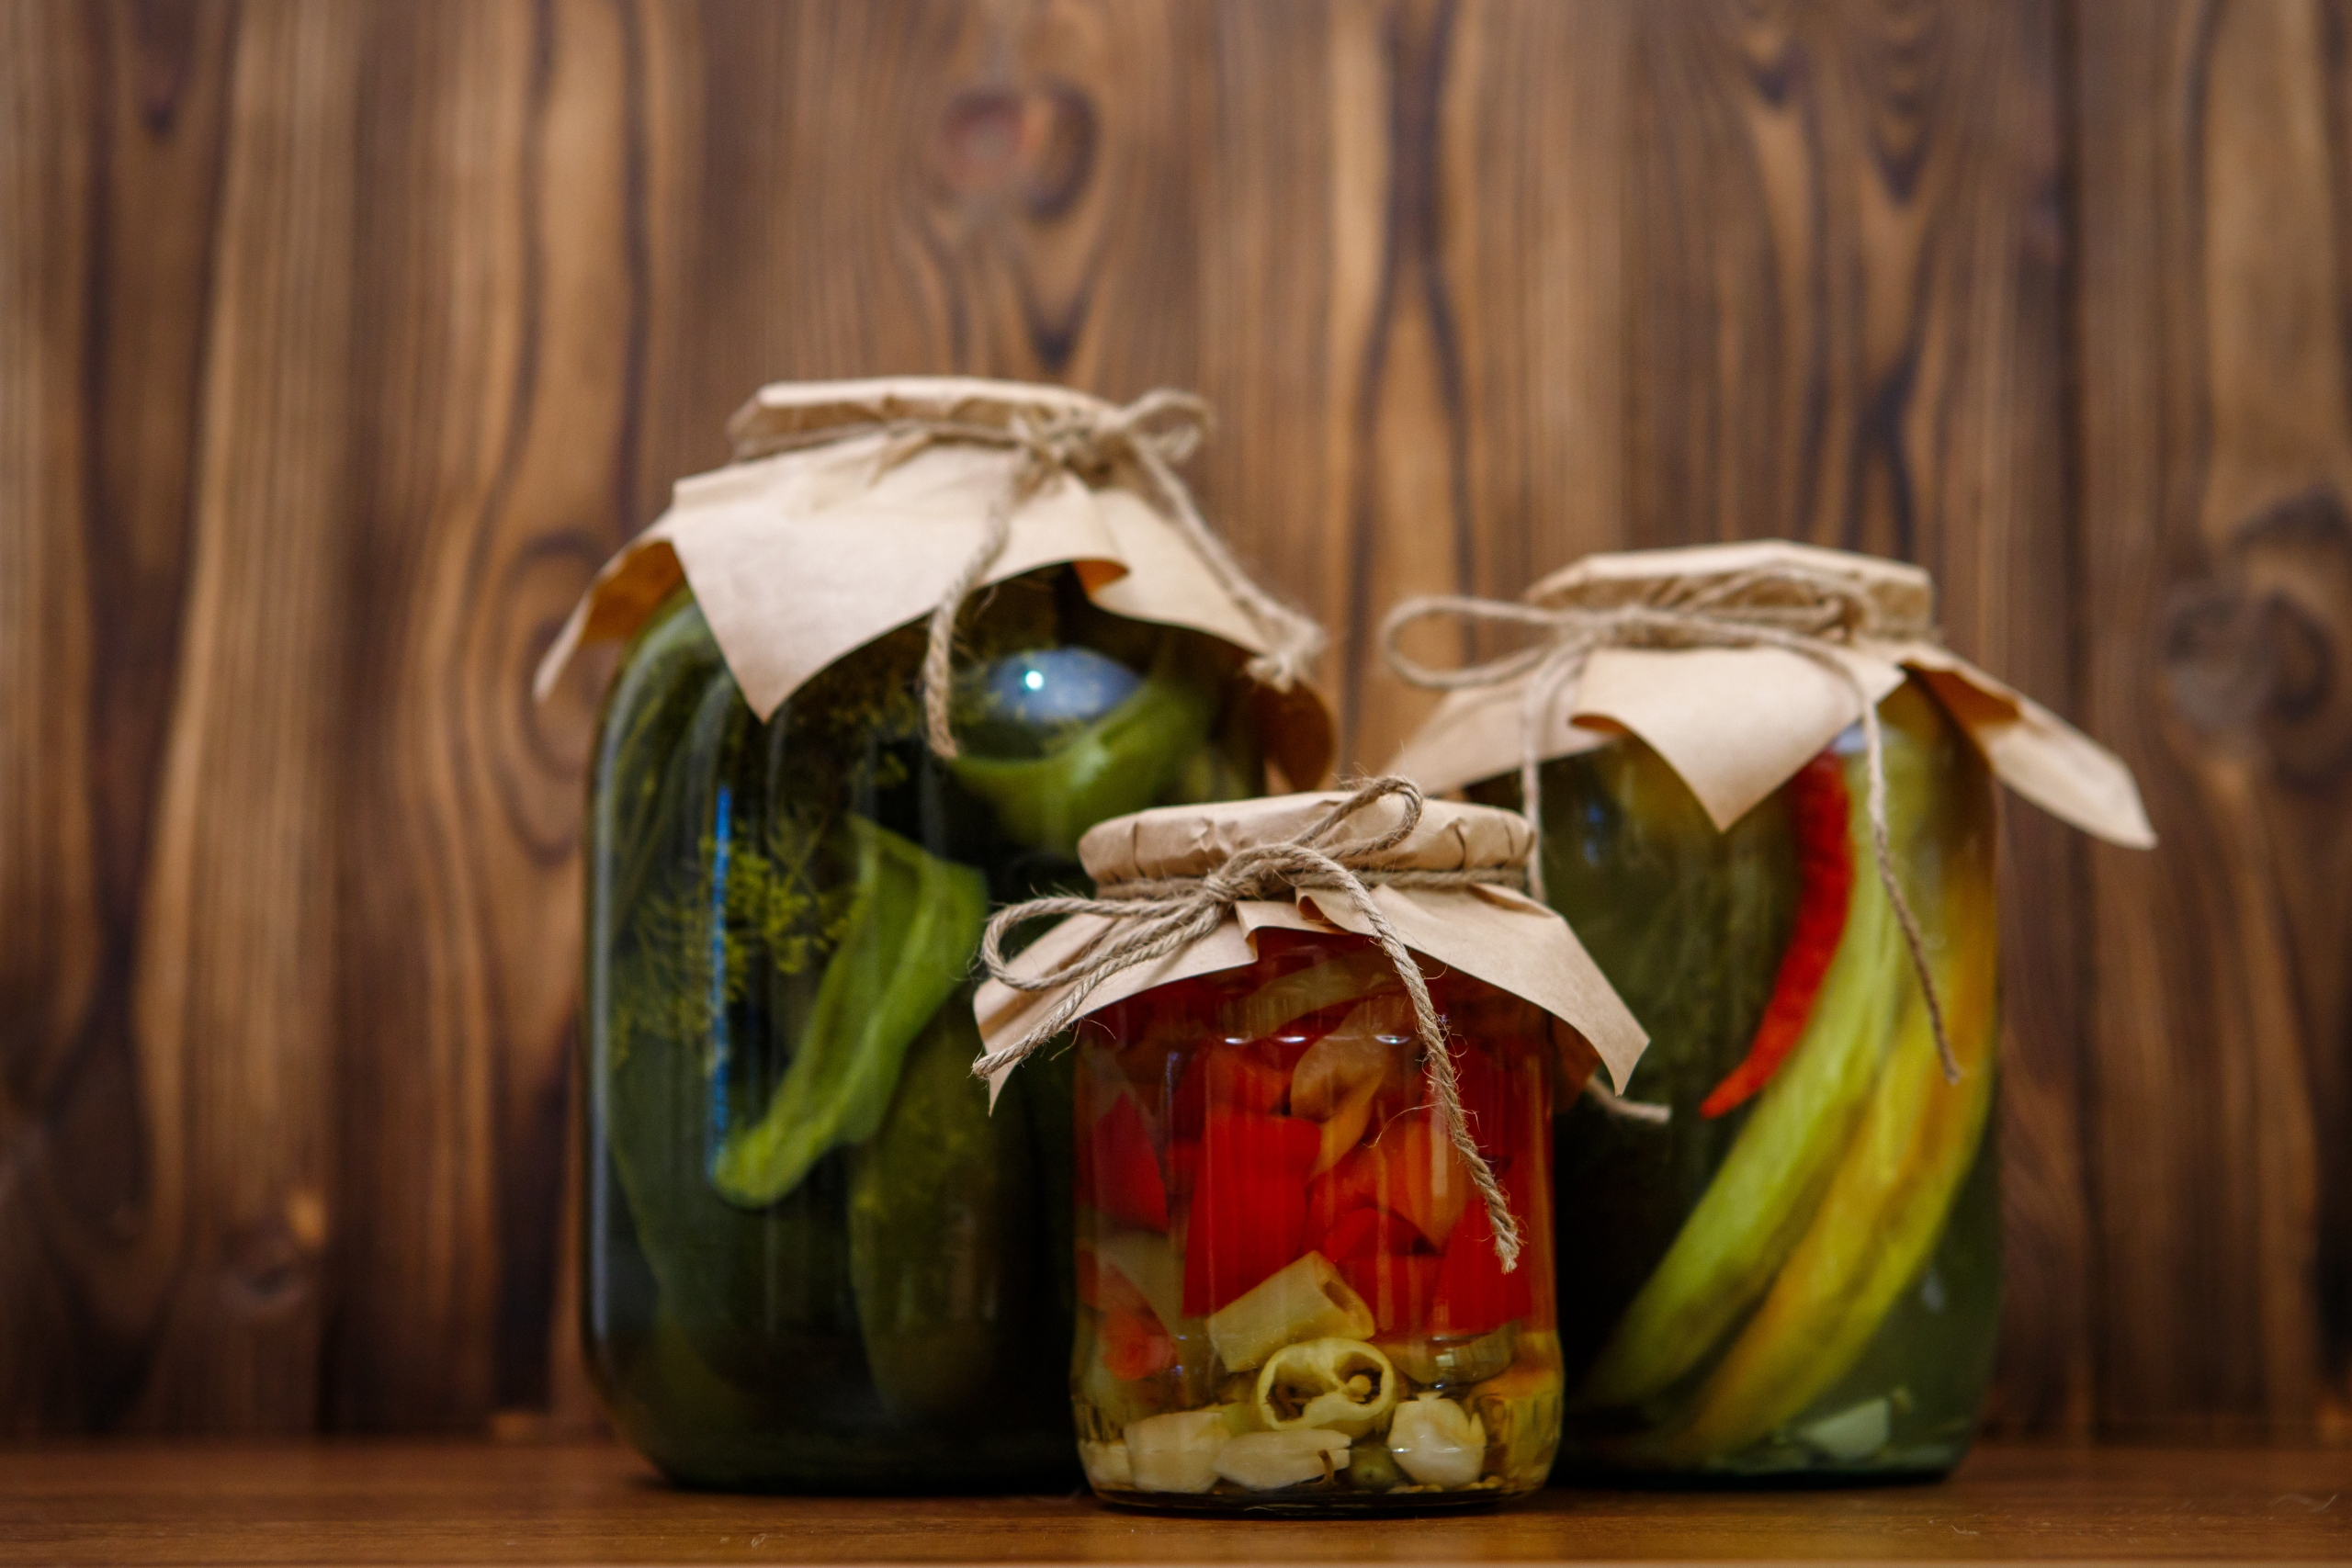 Canned vegetables in glass jars on a wooden background. Pickles. Pickled cucumbers and peppers.